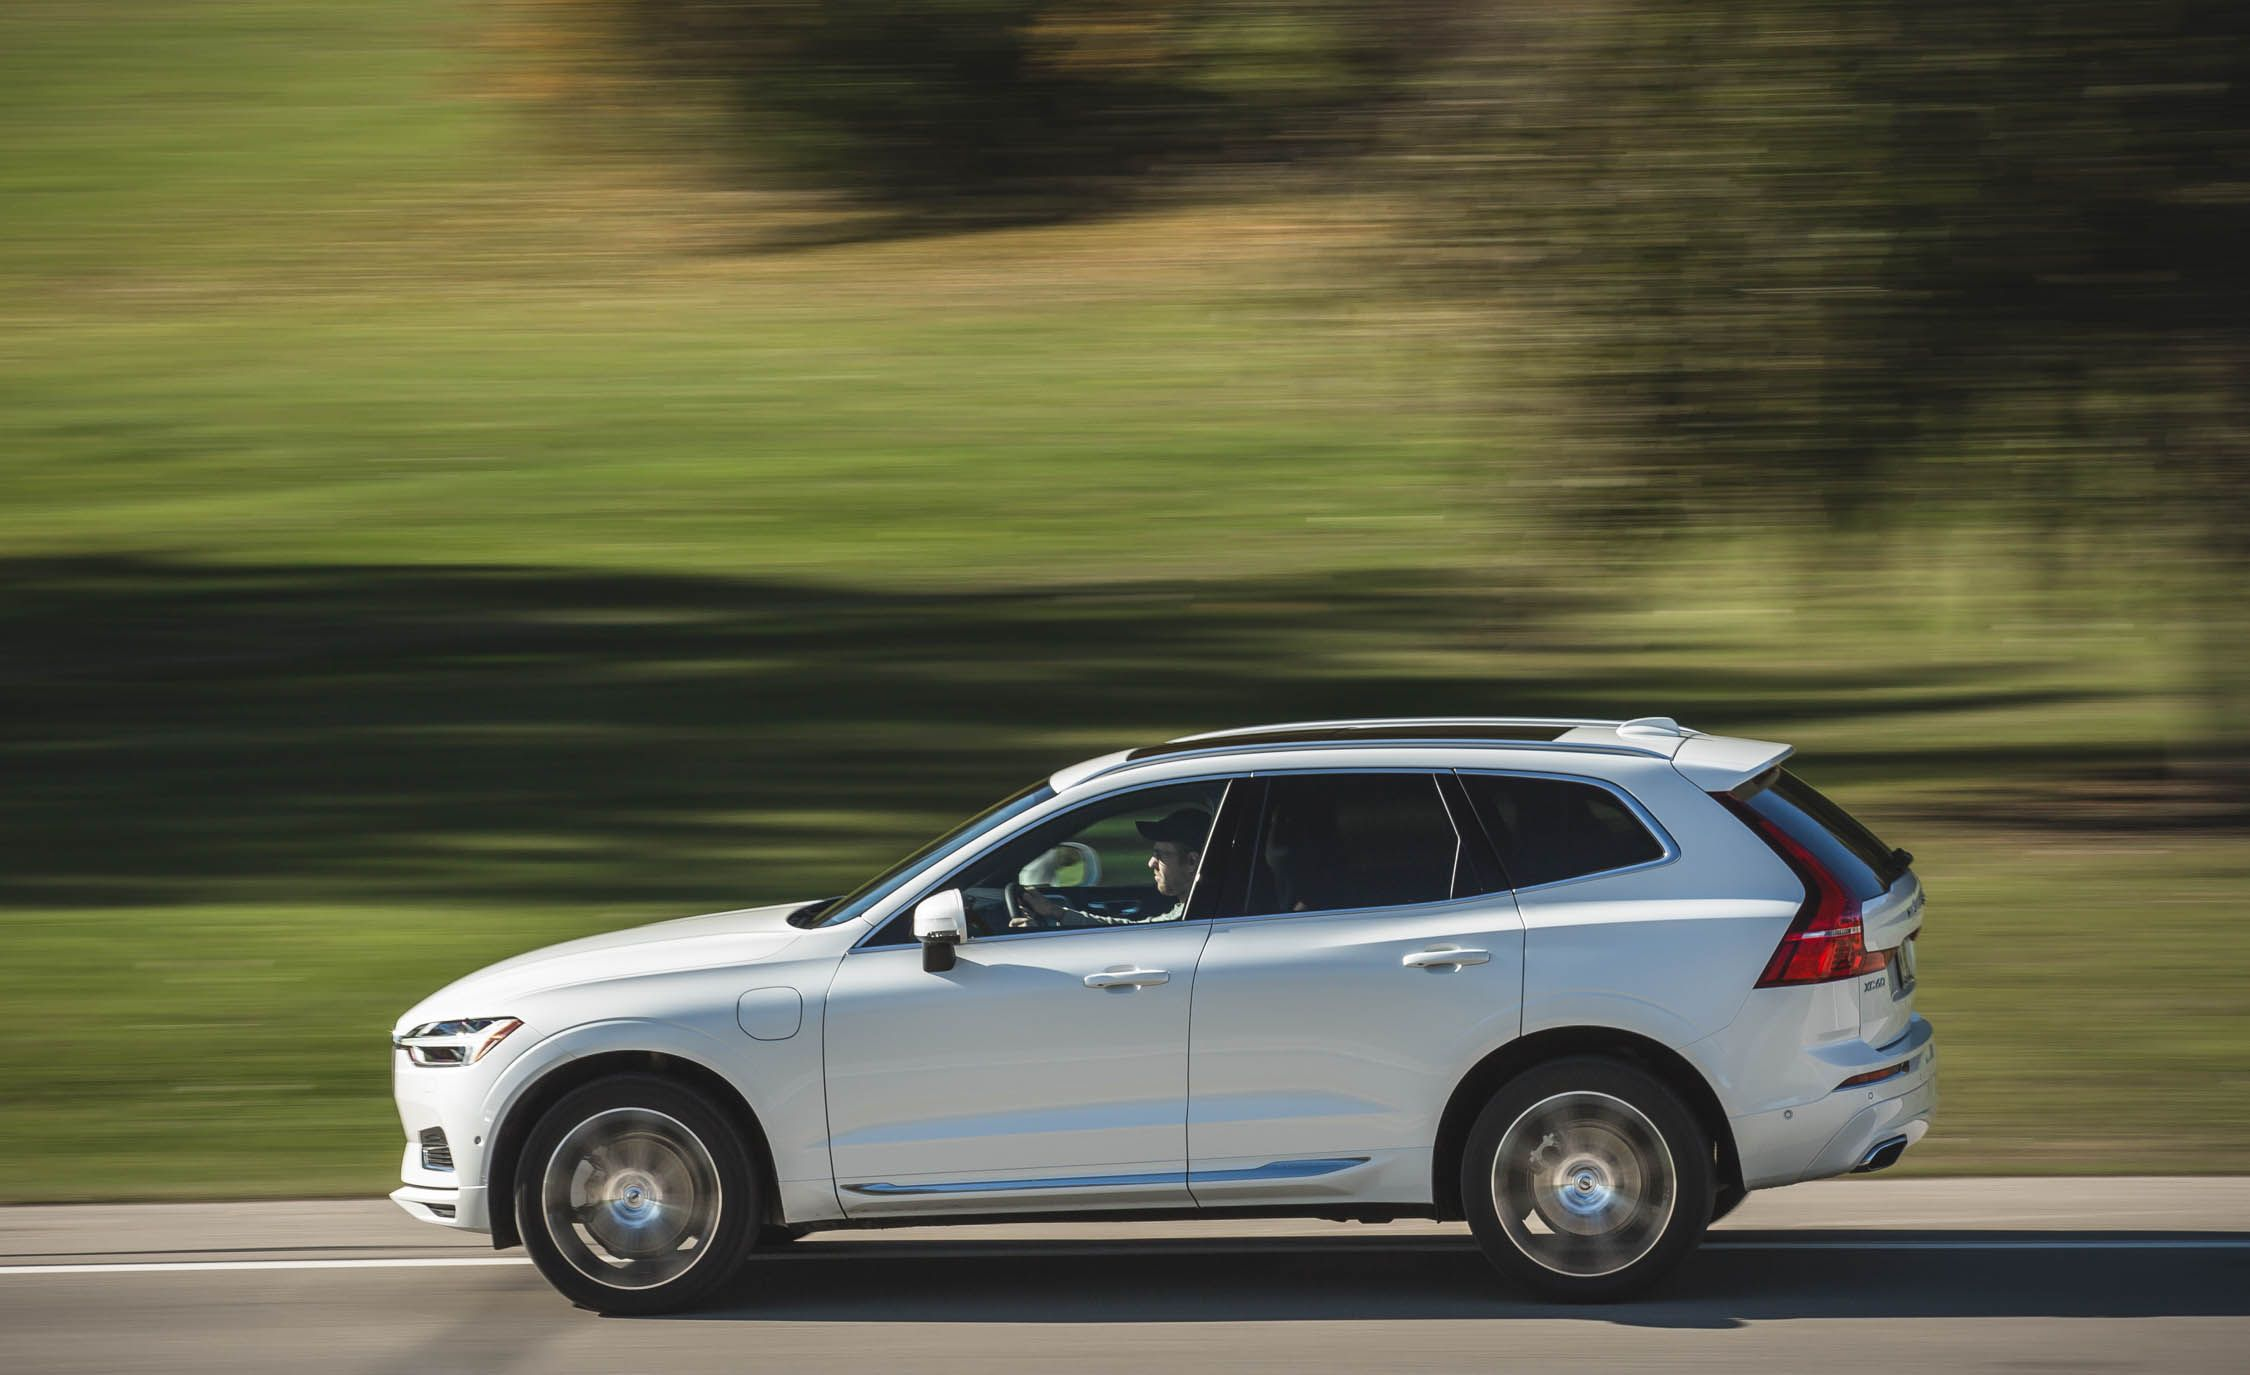 Volvo XC60 Reviews | Volvo XC60 Price, Photos, and Specs | Car and